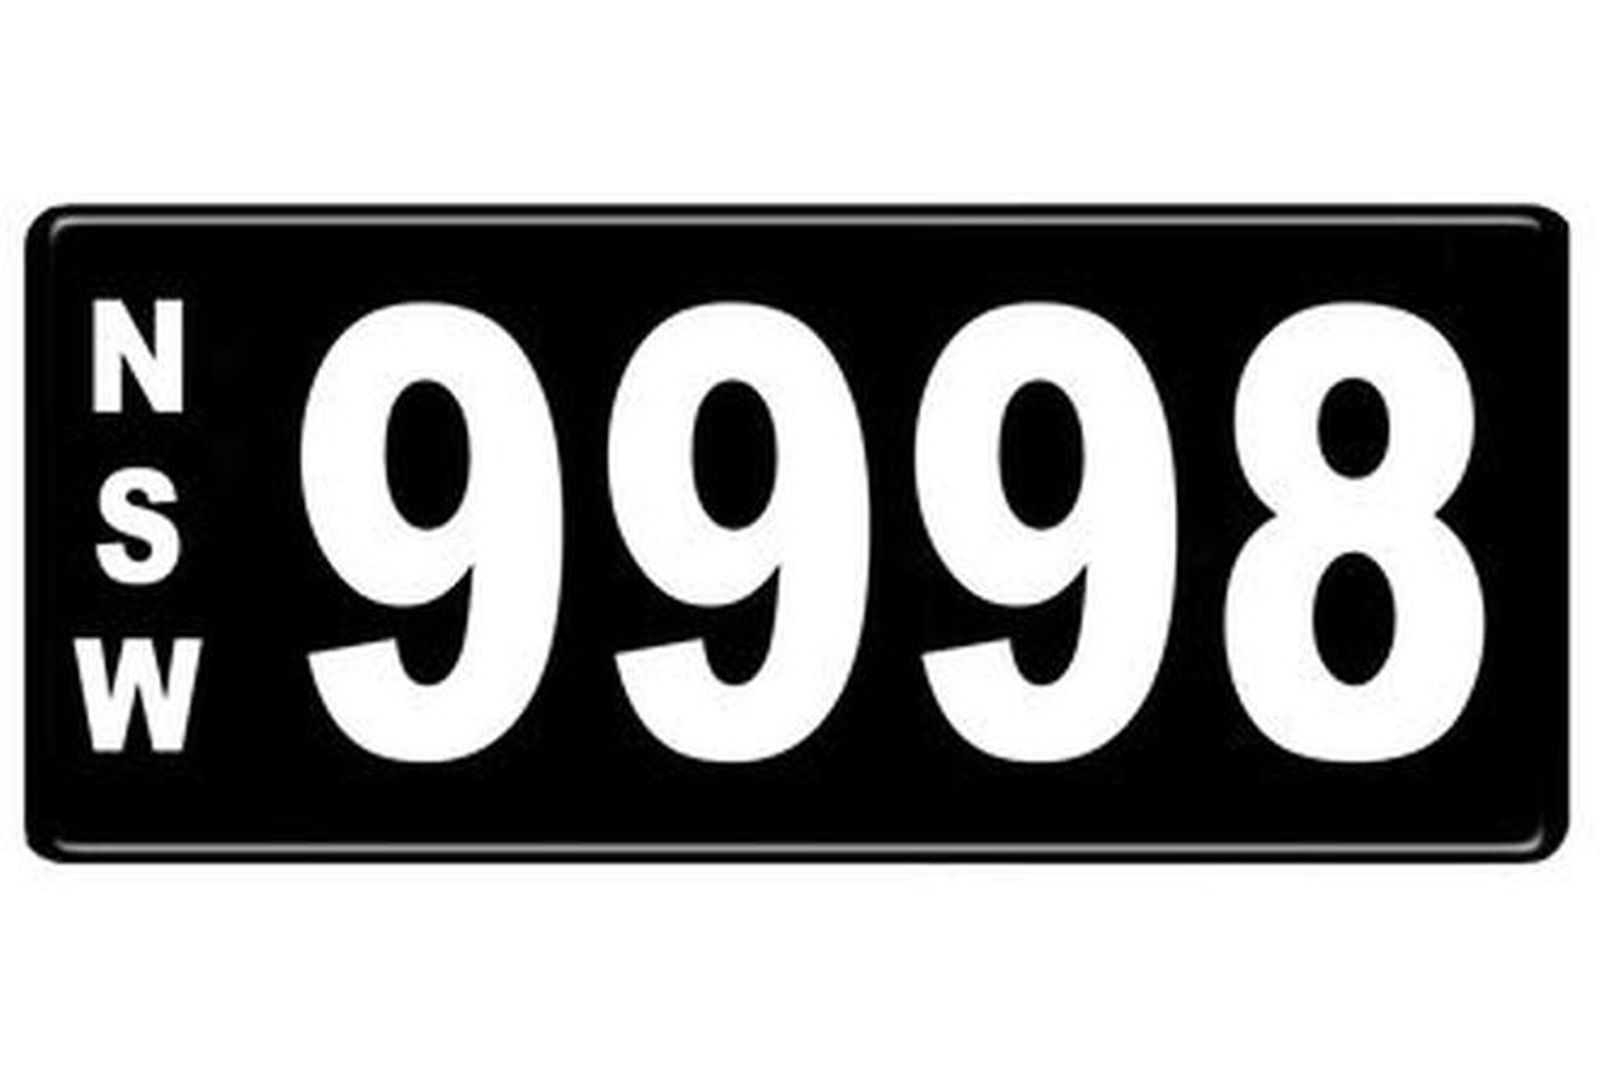 Number Plates - NSW Numerical Number Plates '9998'